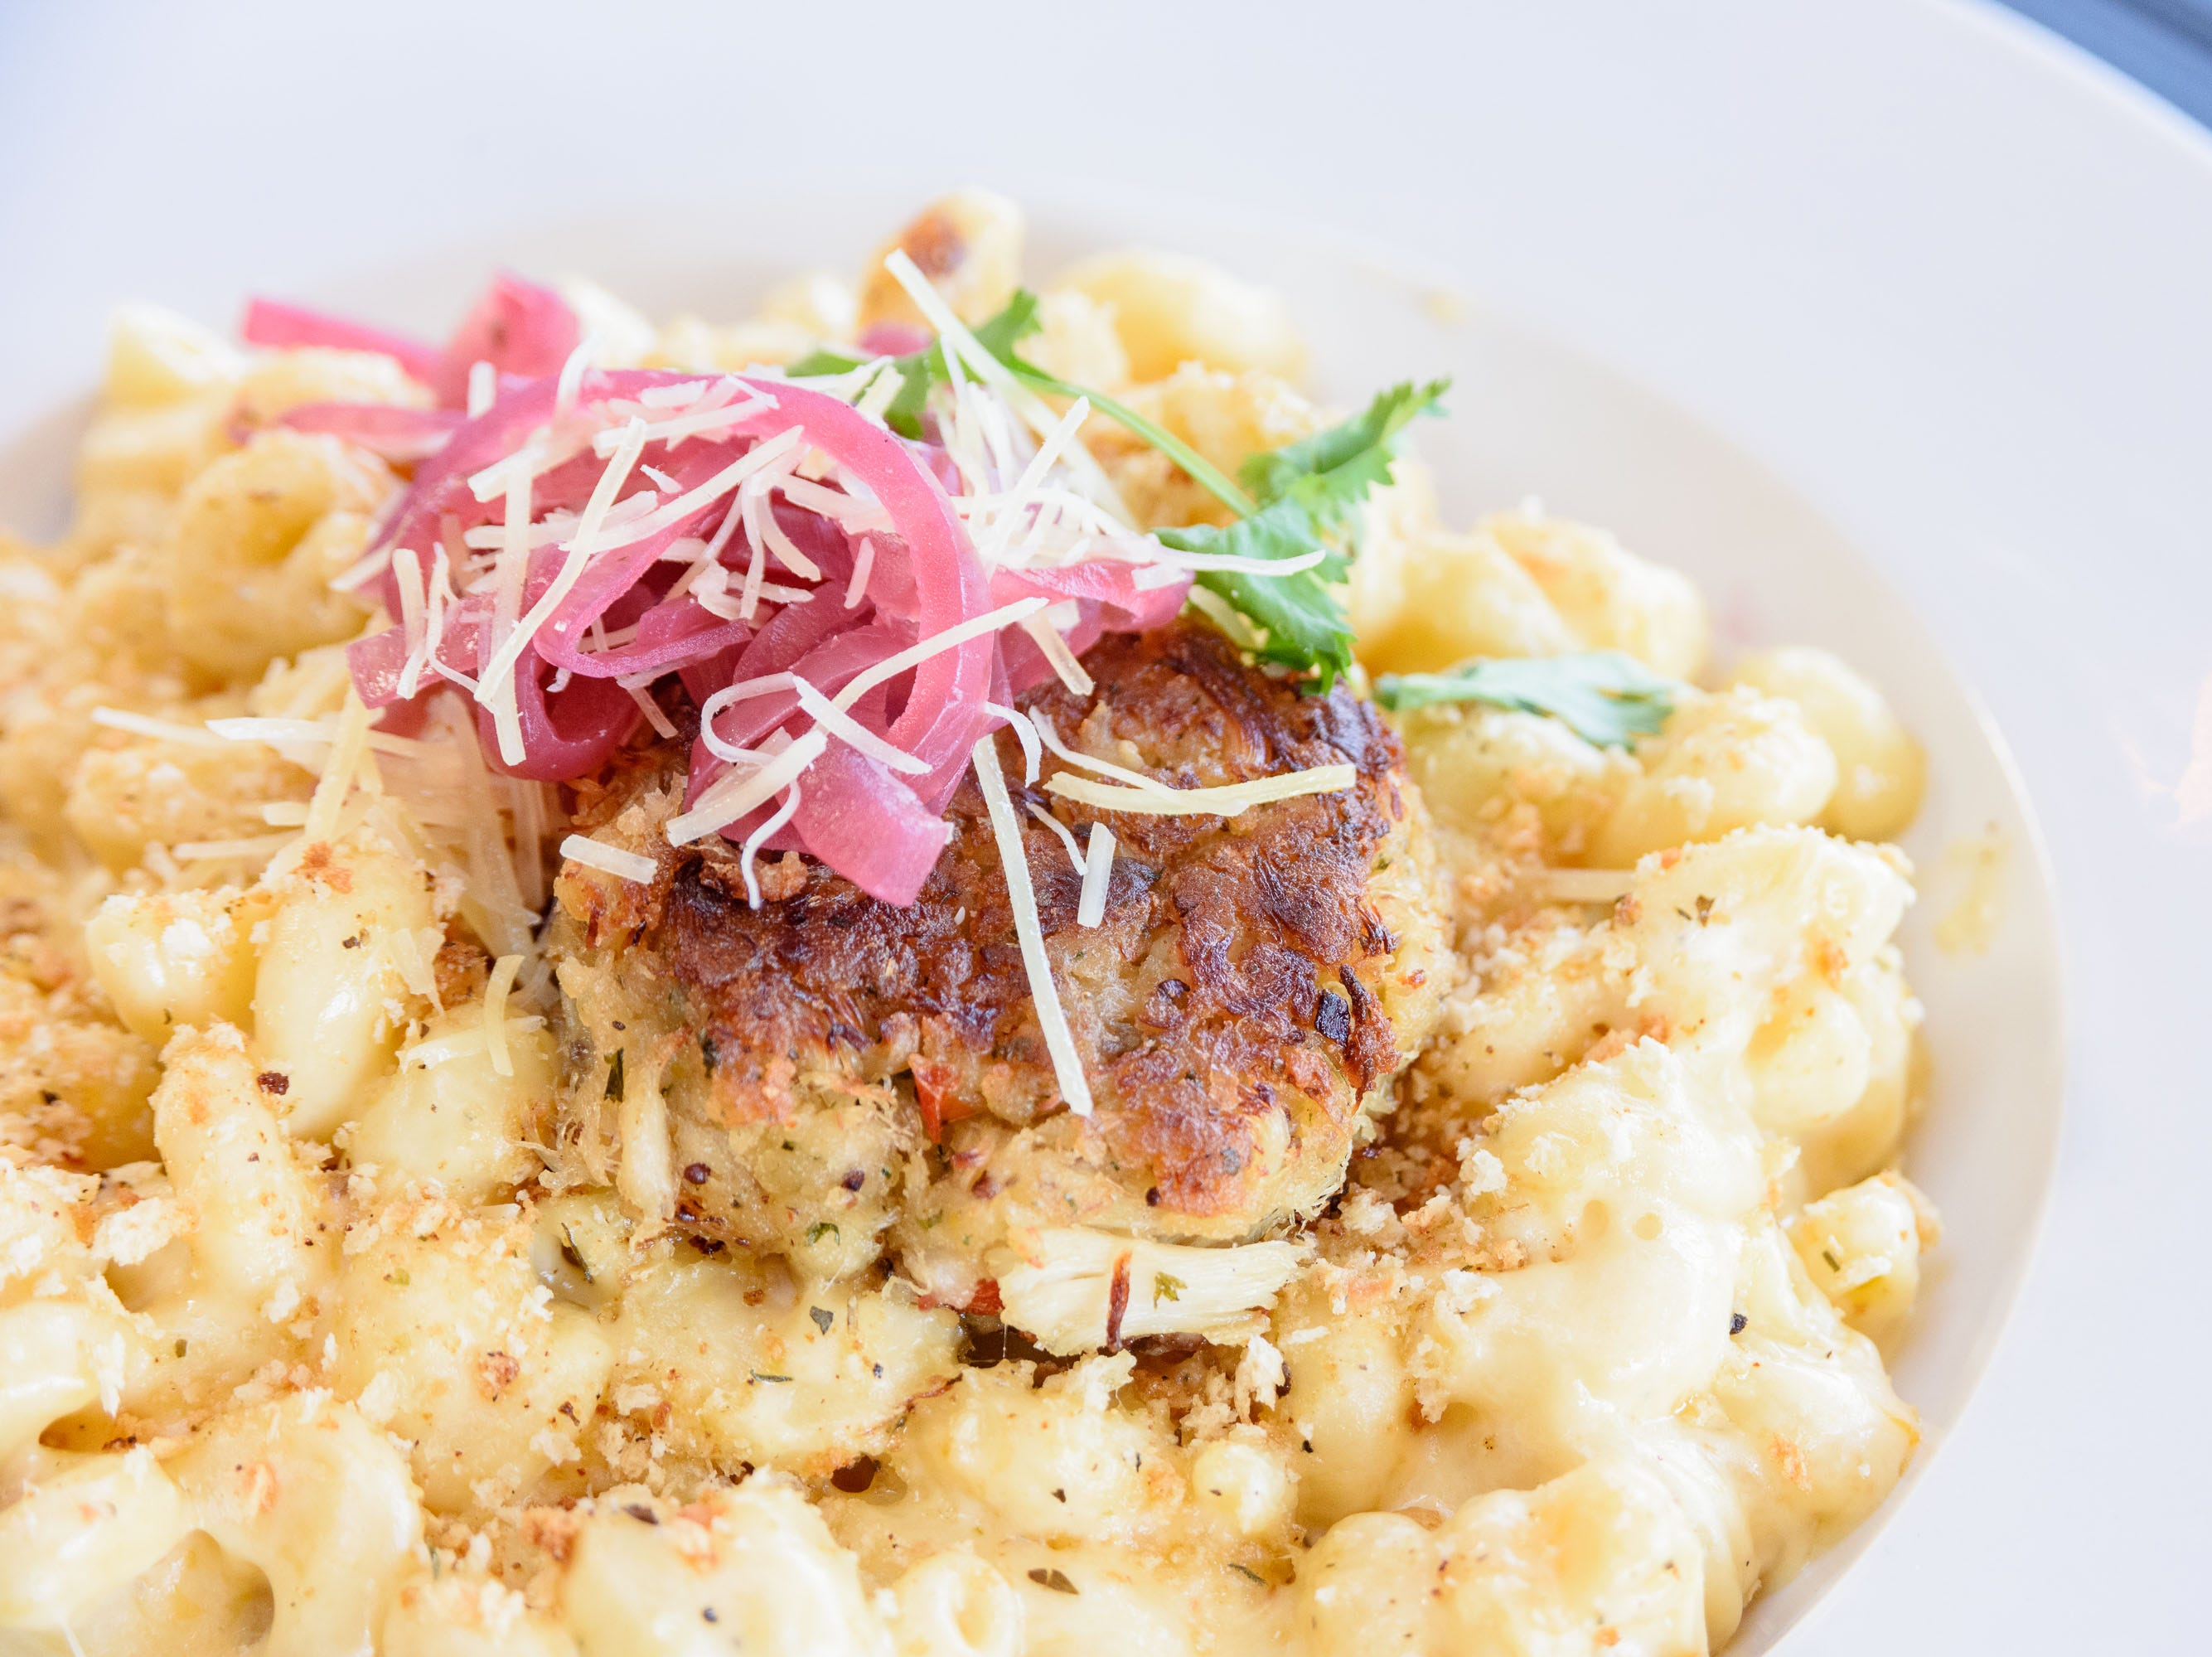 Mac N Chz with Pickled Red Onion and Crab Cake at The Manhattan Project at 2101 Frankfort Ave. Oct. 18, 2018